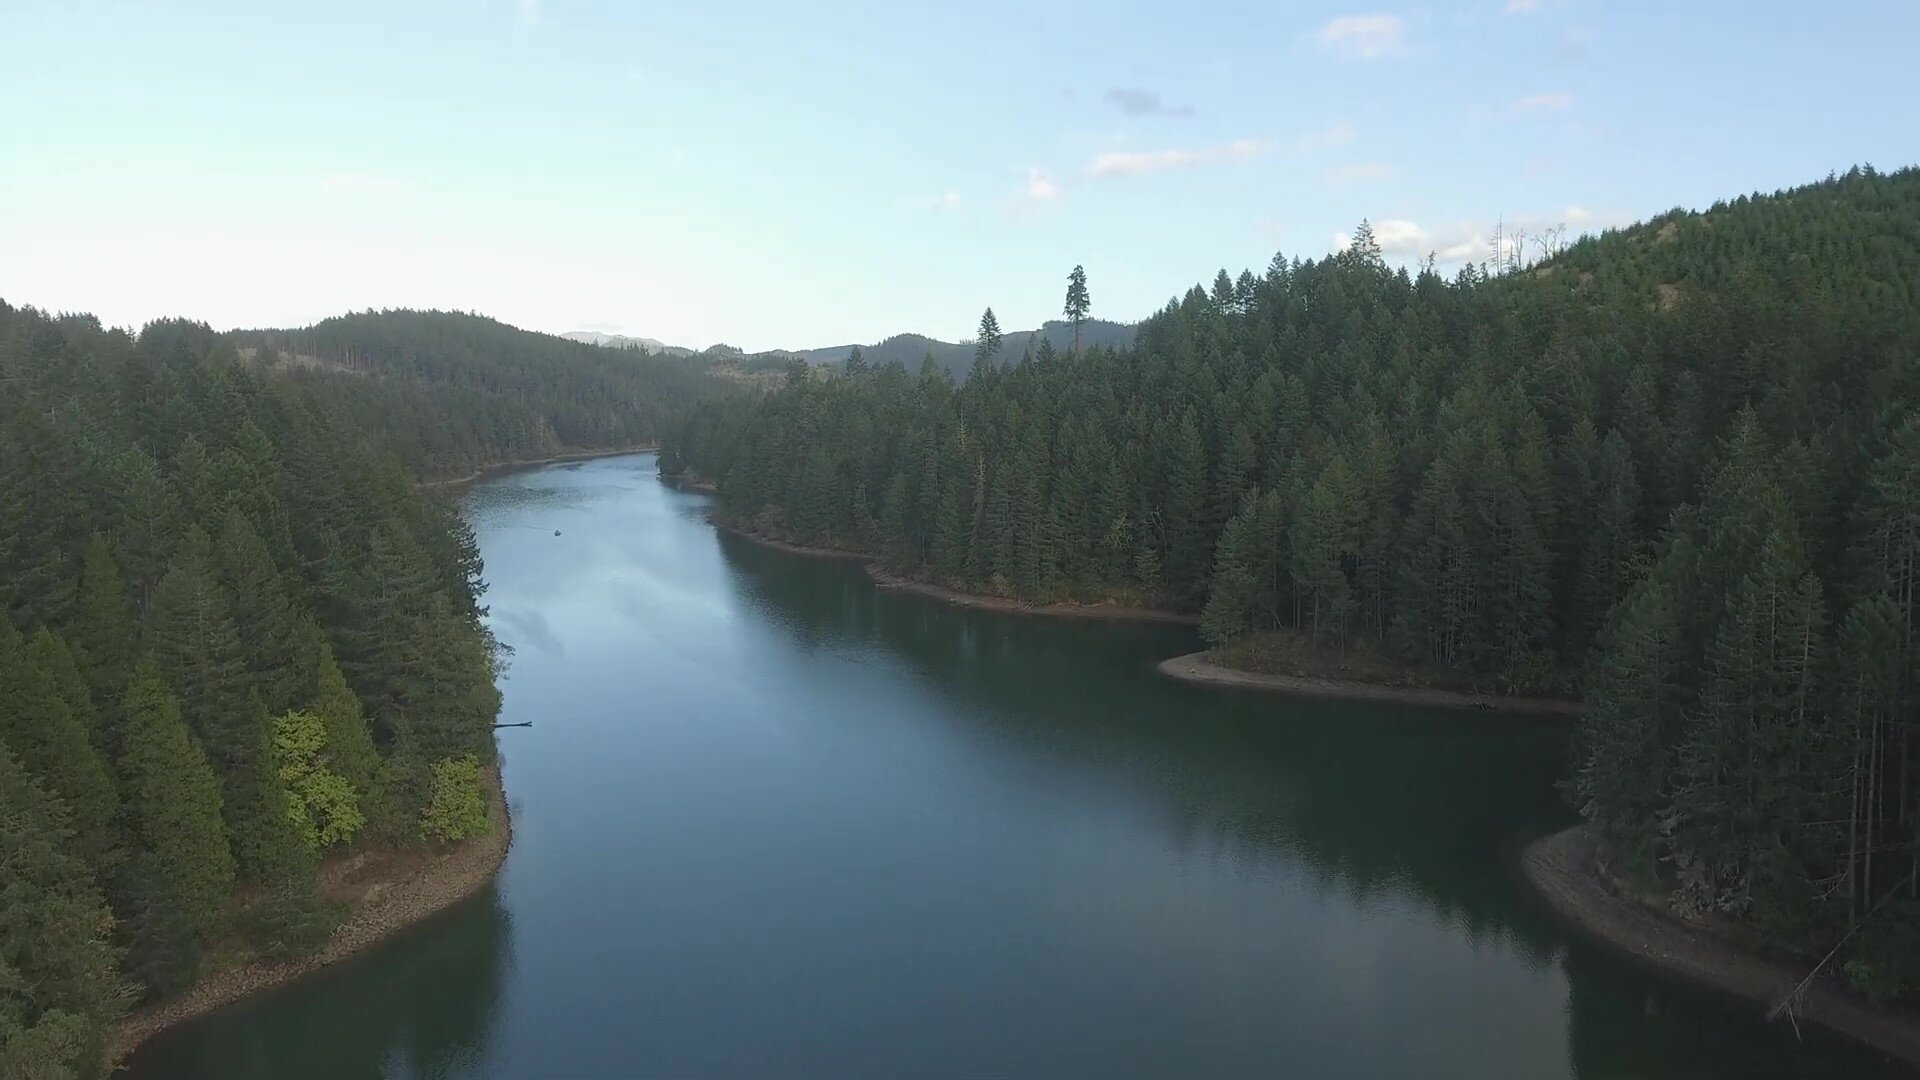 Drone shot of Cooper Creek, Sutherlin Oregon